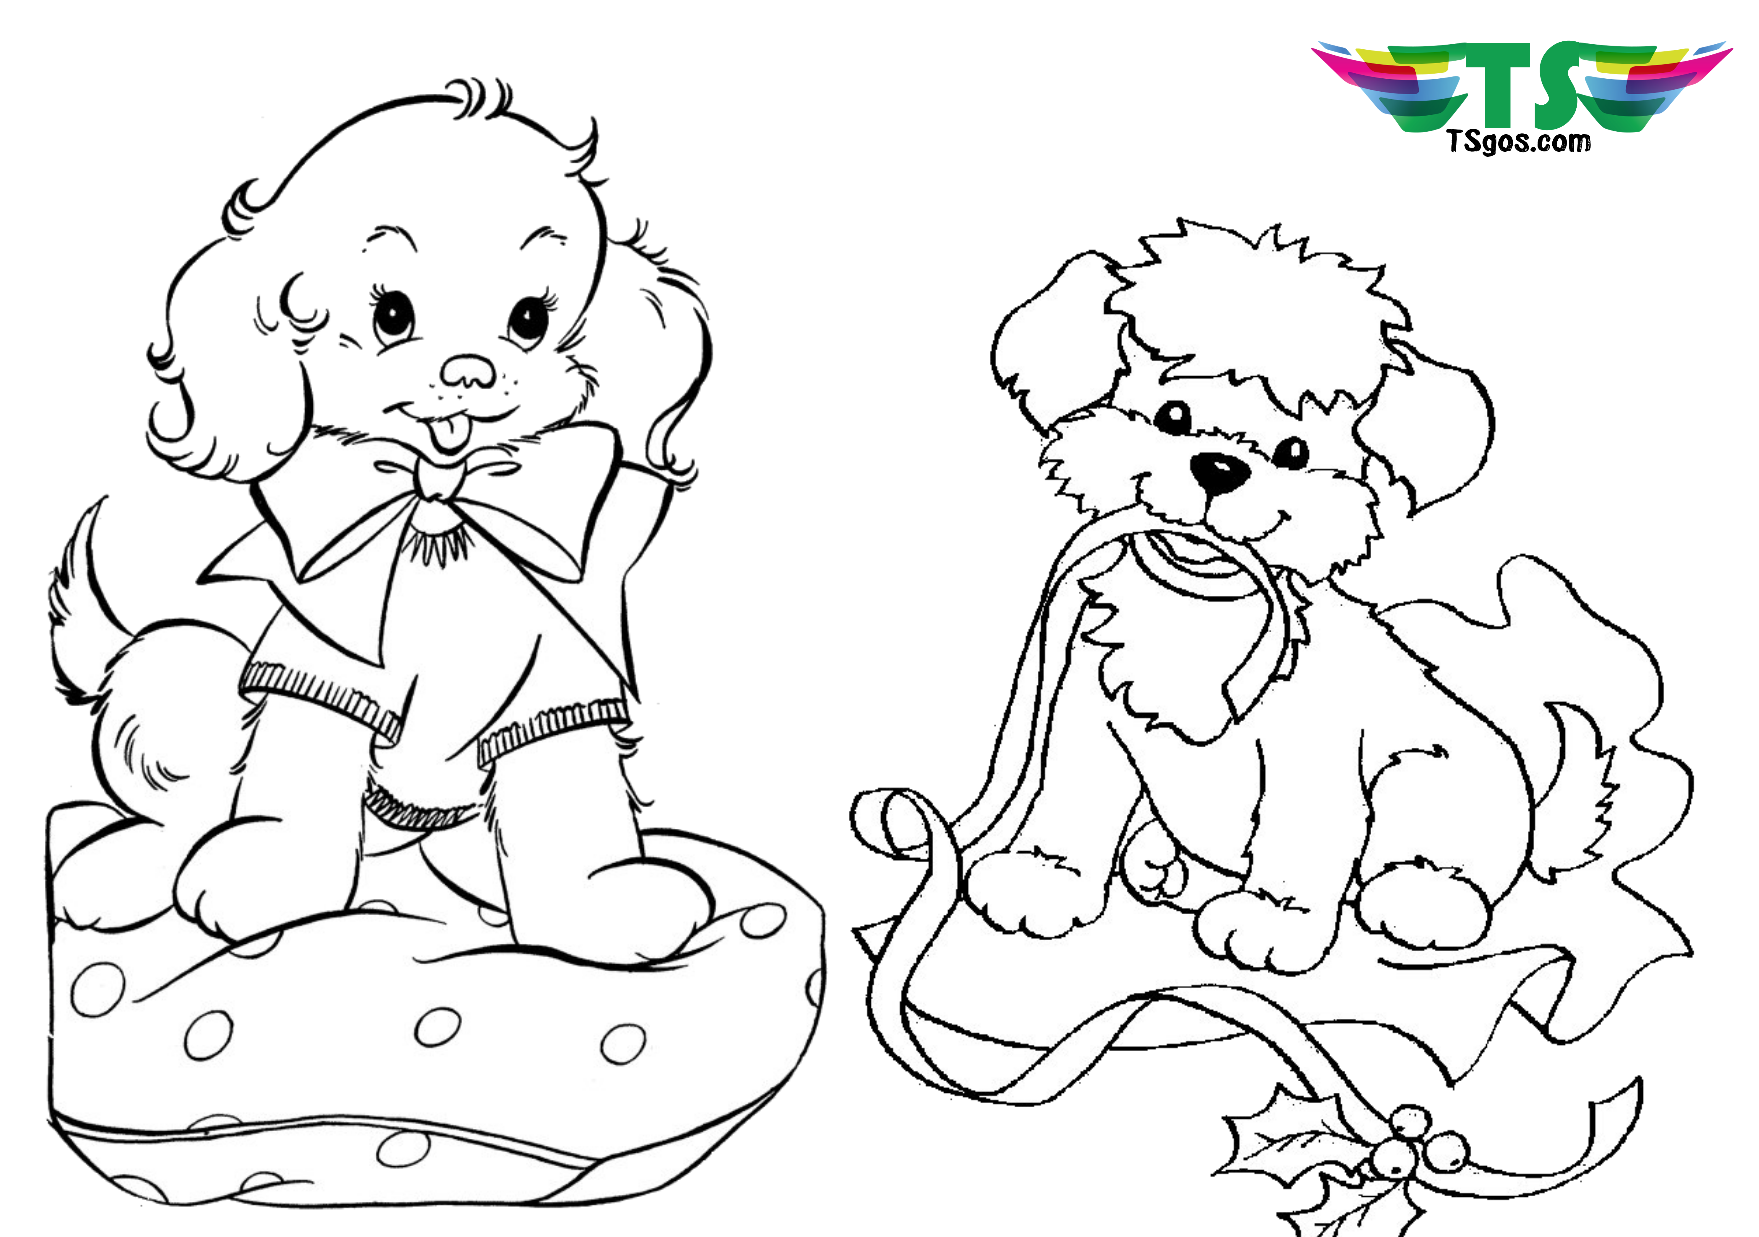 dog coloring employ dog coloring pages for your childrens creative time coloring dog